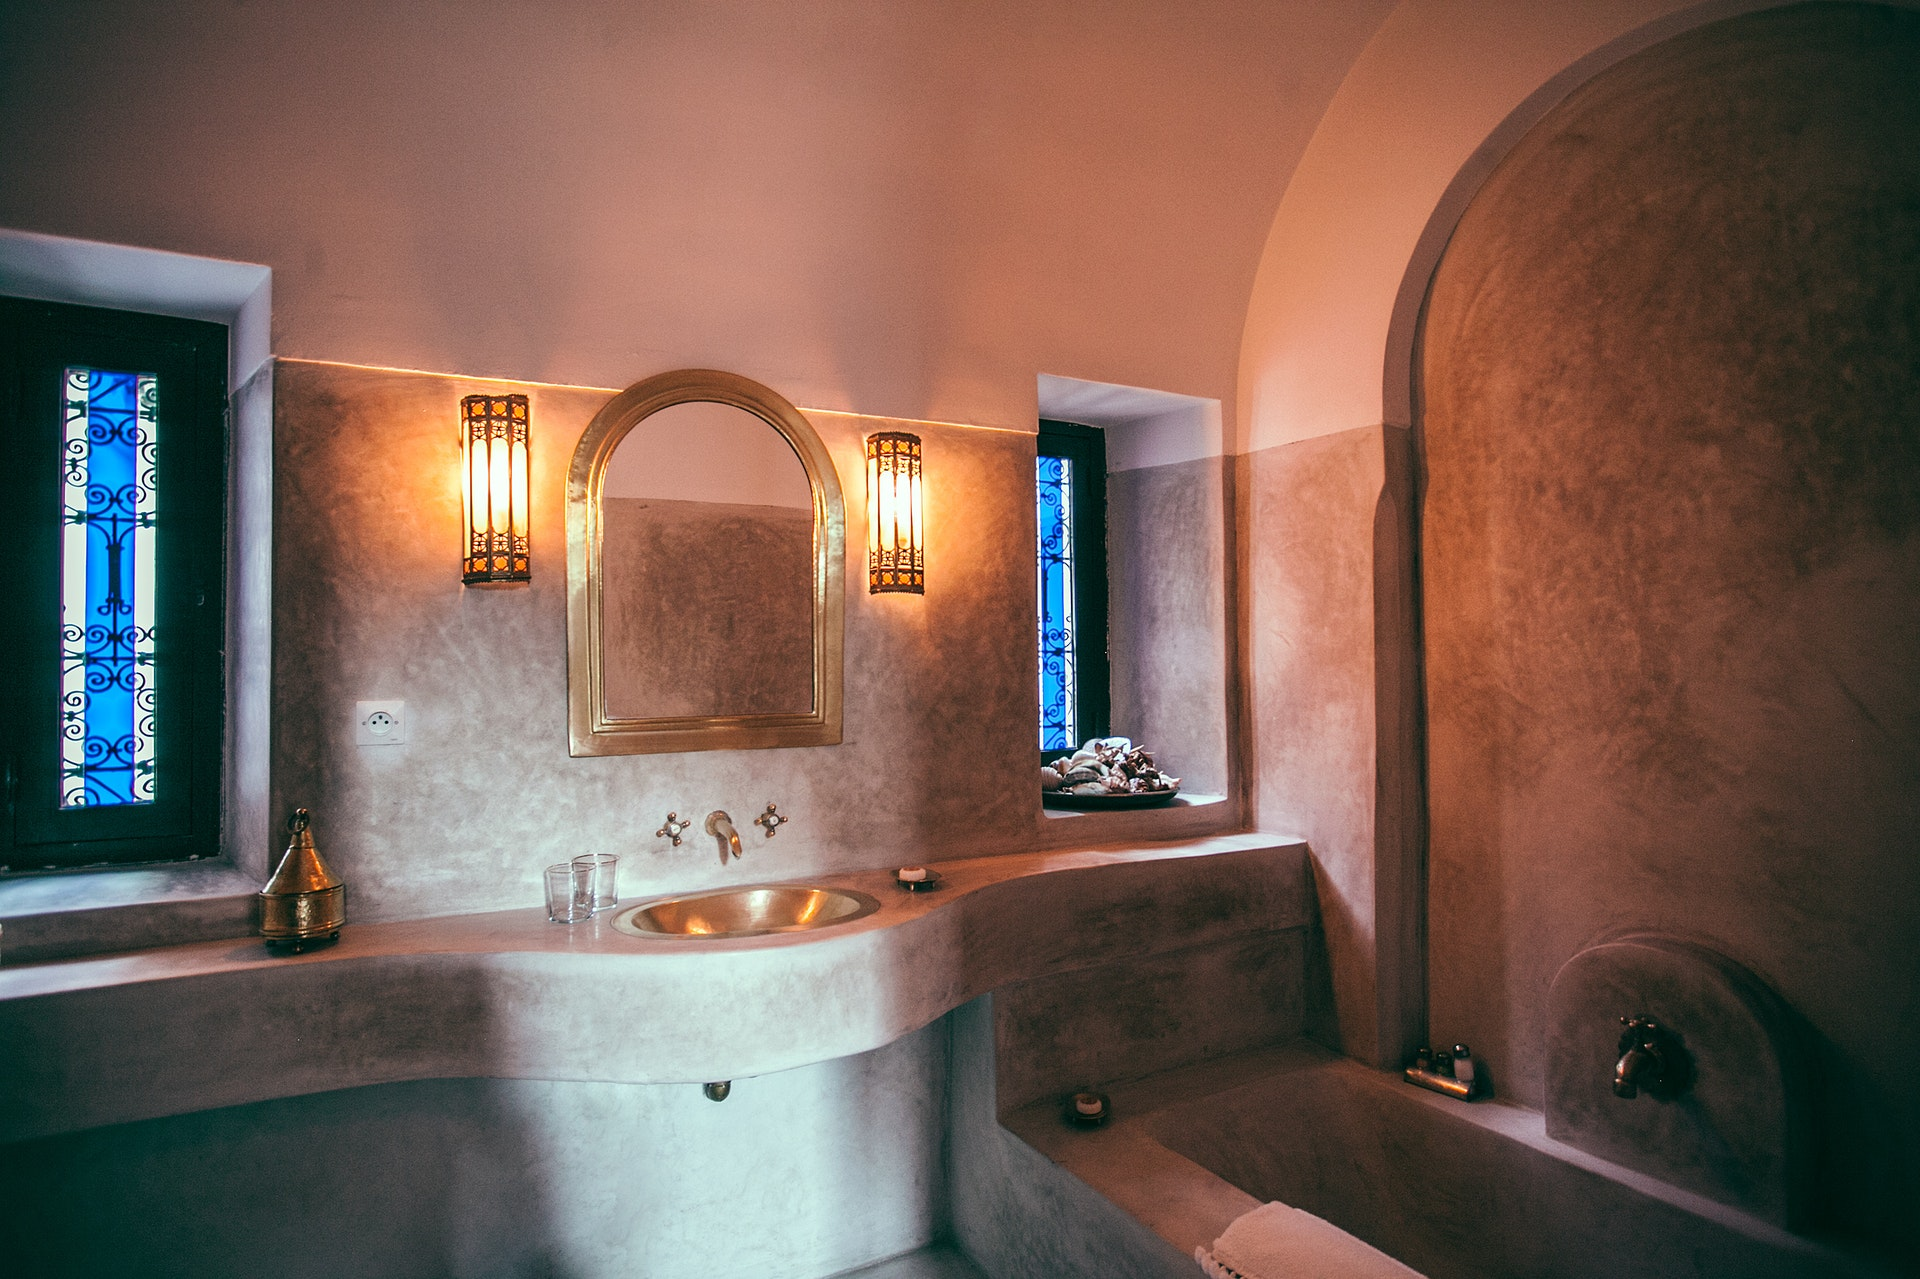 Smart Bathroom Organizing Ideas to Improve Your Home